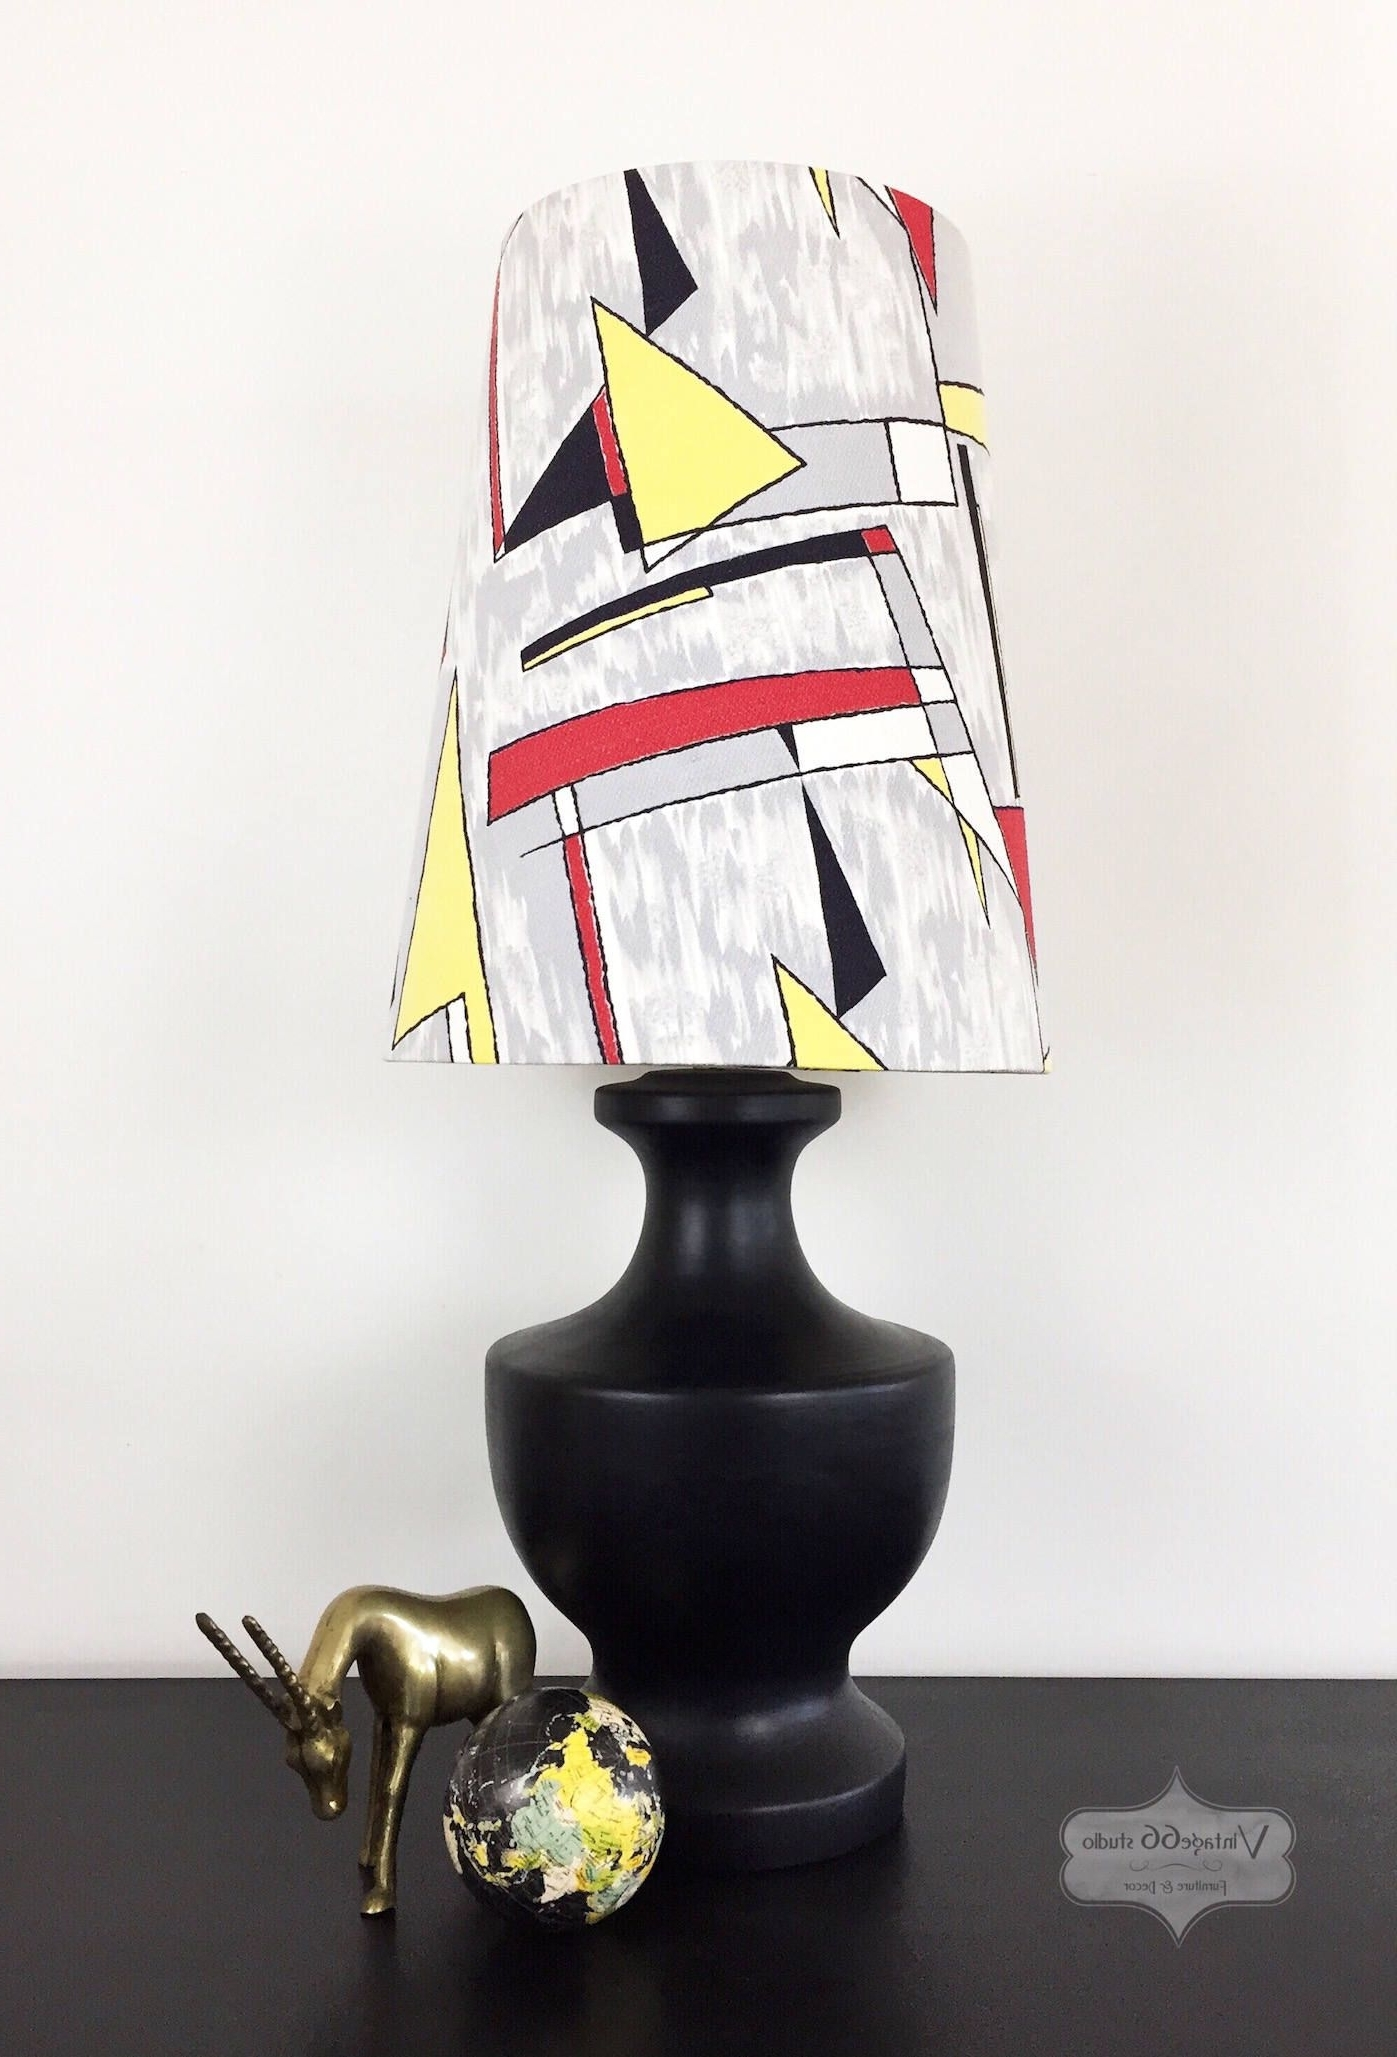 Favorite Red Living Room Table Lamps For Vintage Black Table Lamp With Atomic Barkcloth Shade, Retro, Mid (View 7 of 20)